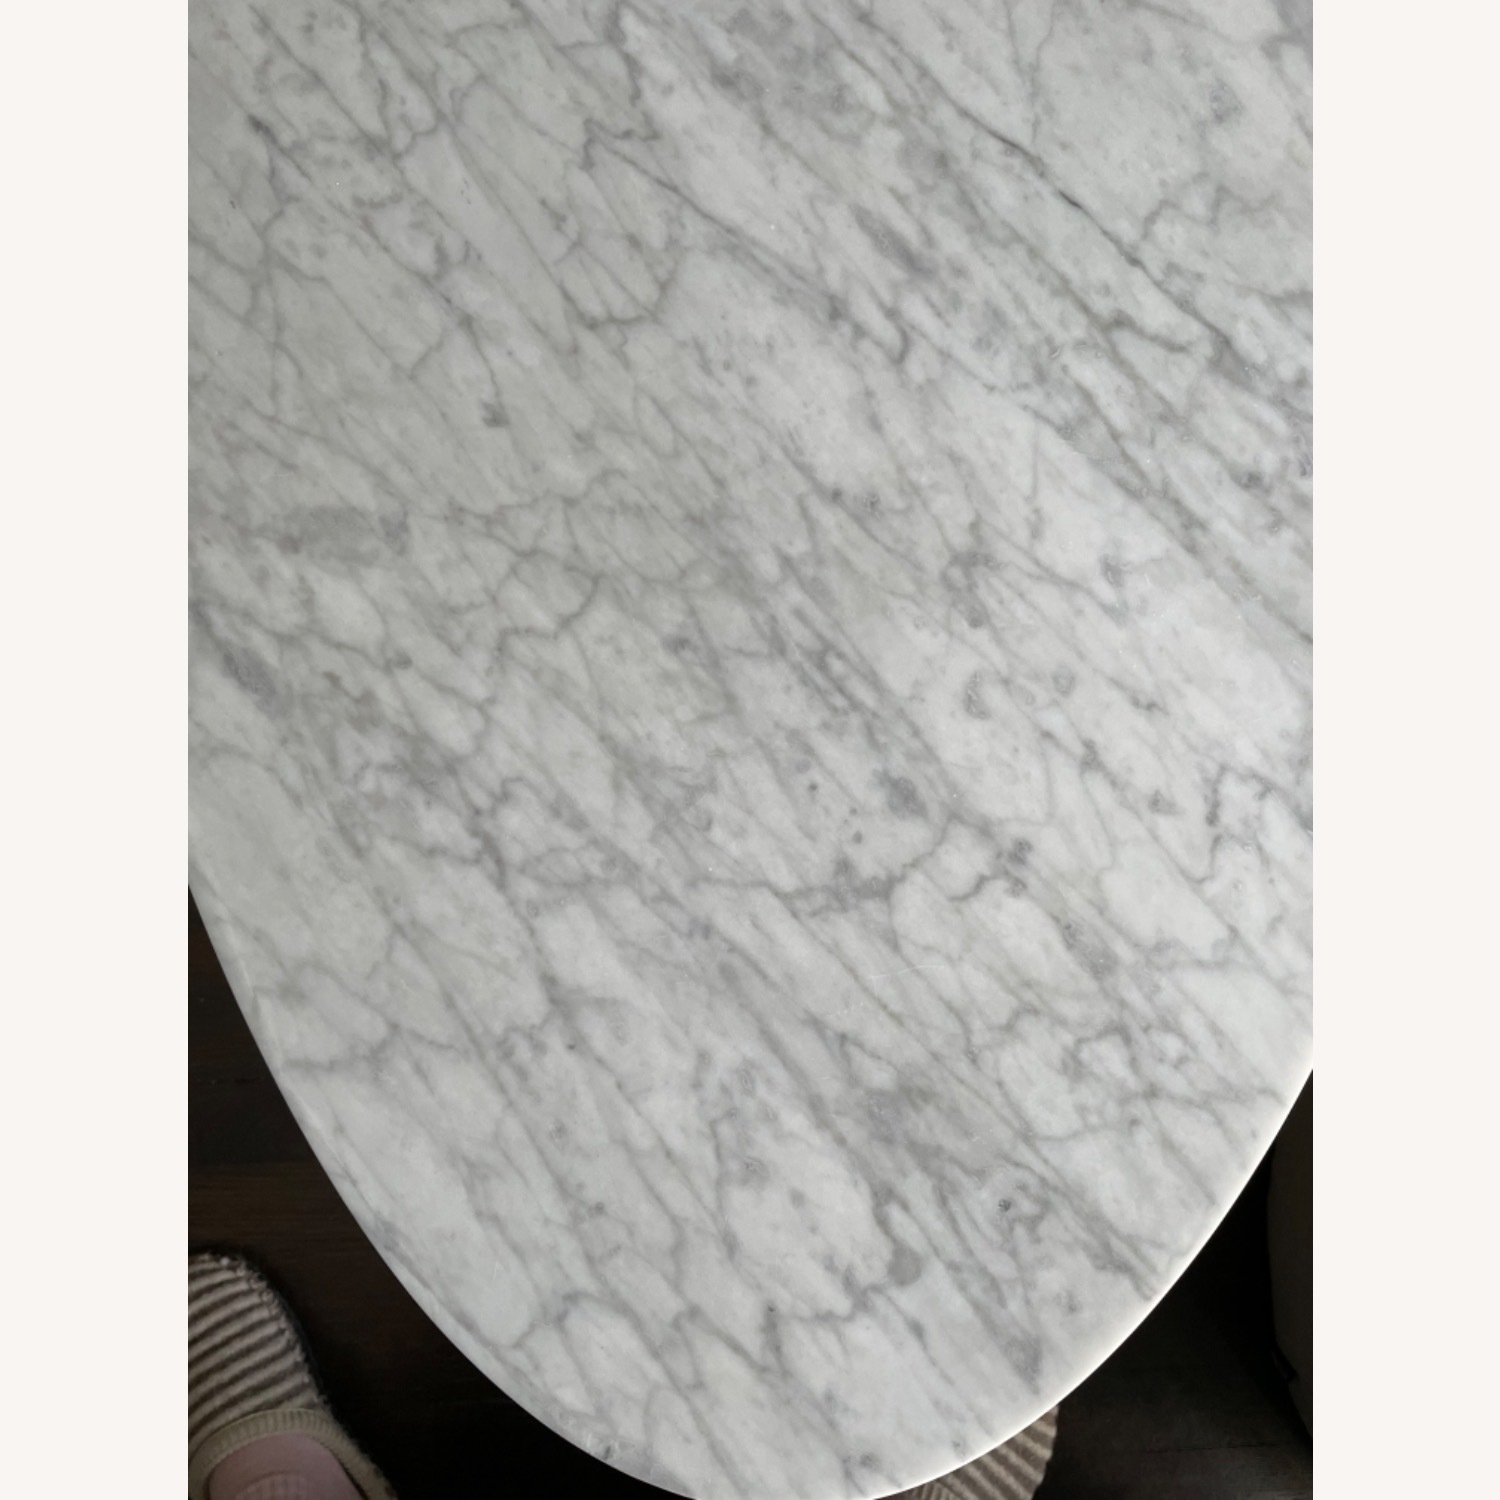 West Elm Reeve Mid-Century Oval Coffee Table - Marble Top - image-9